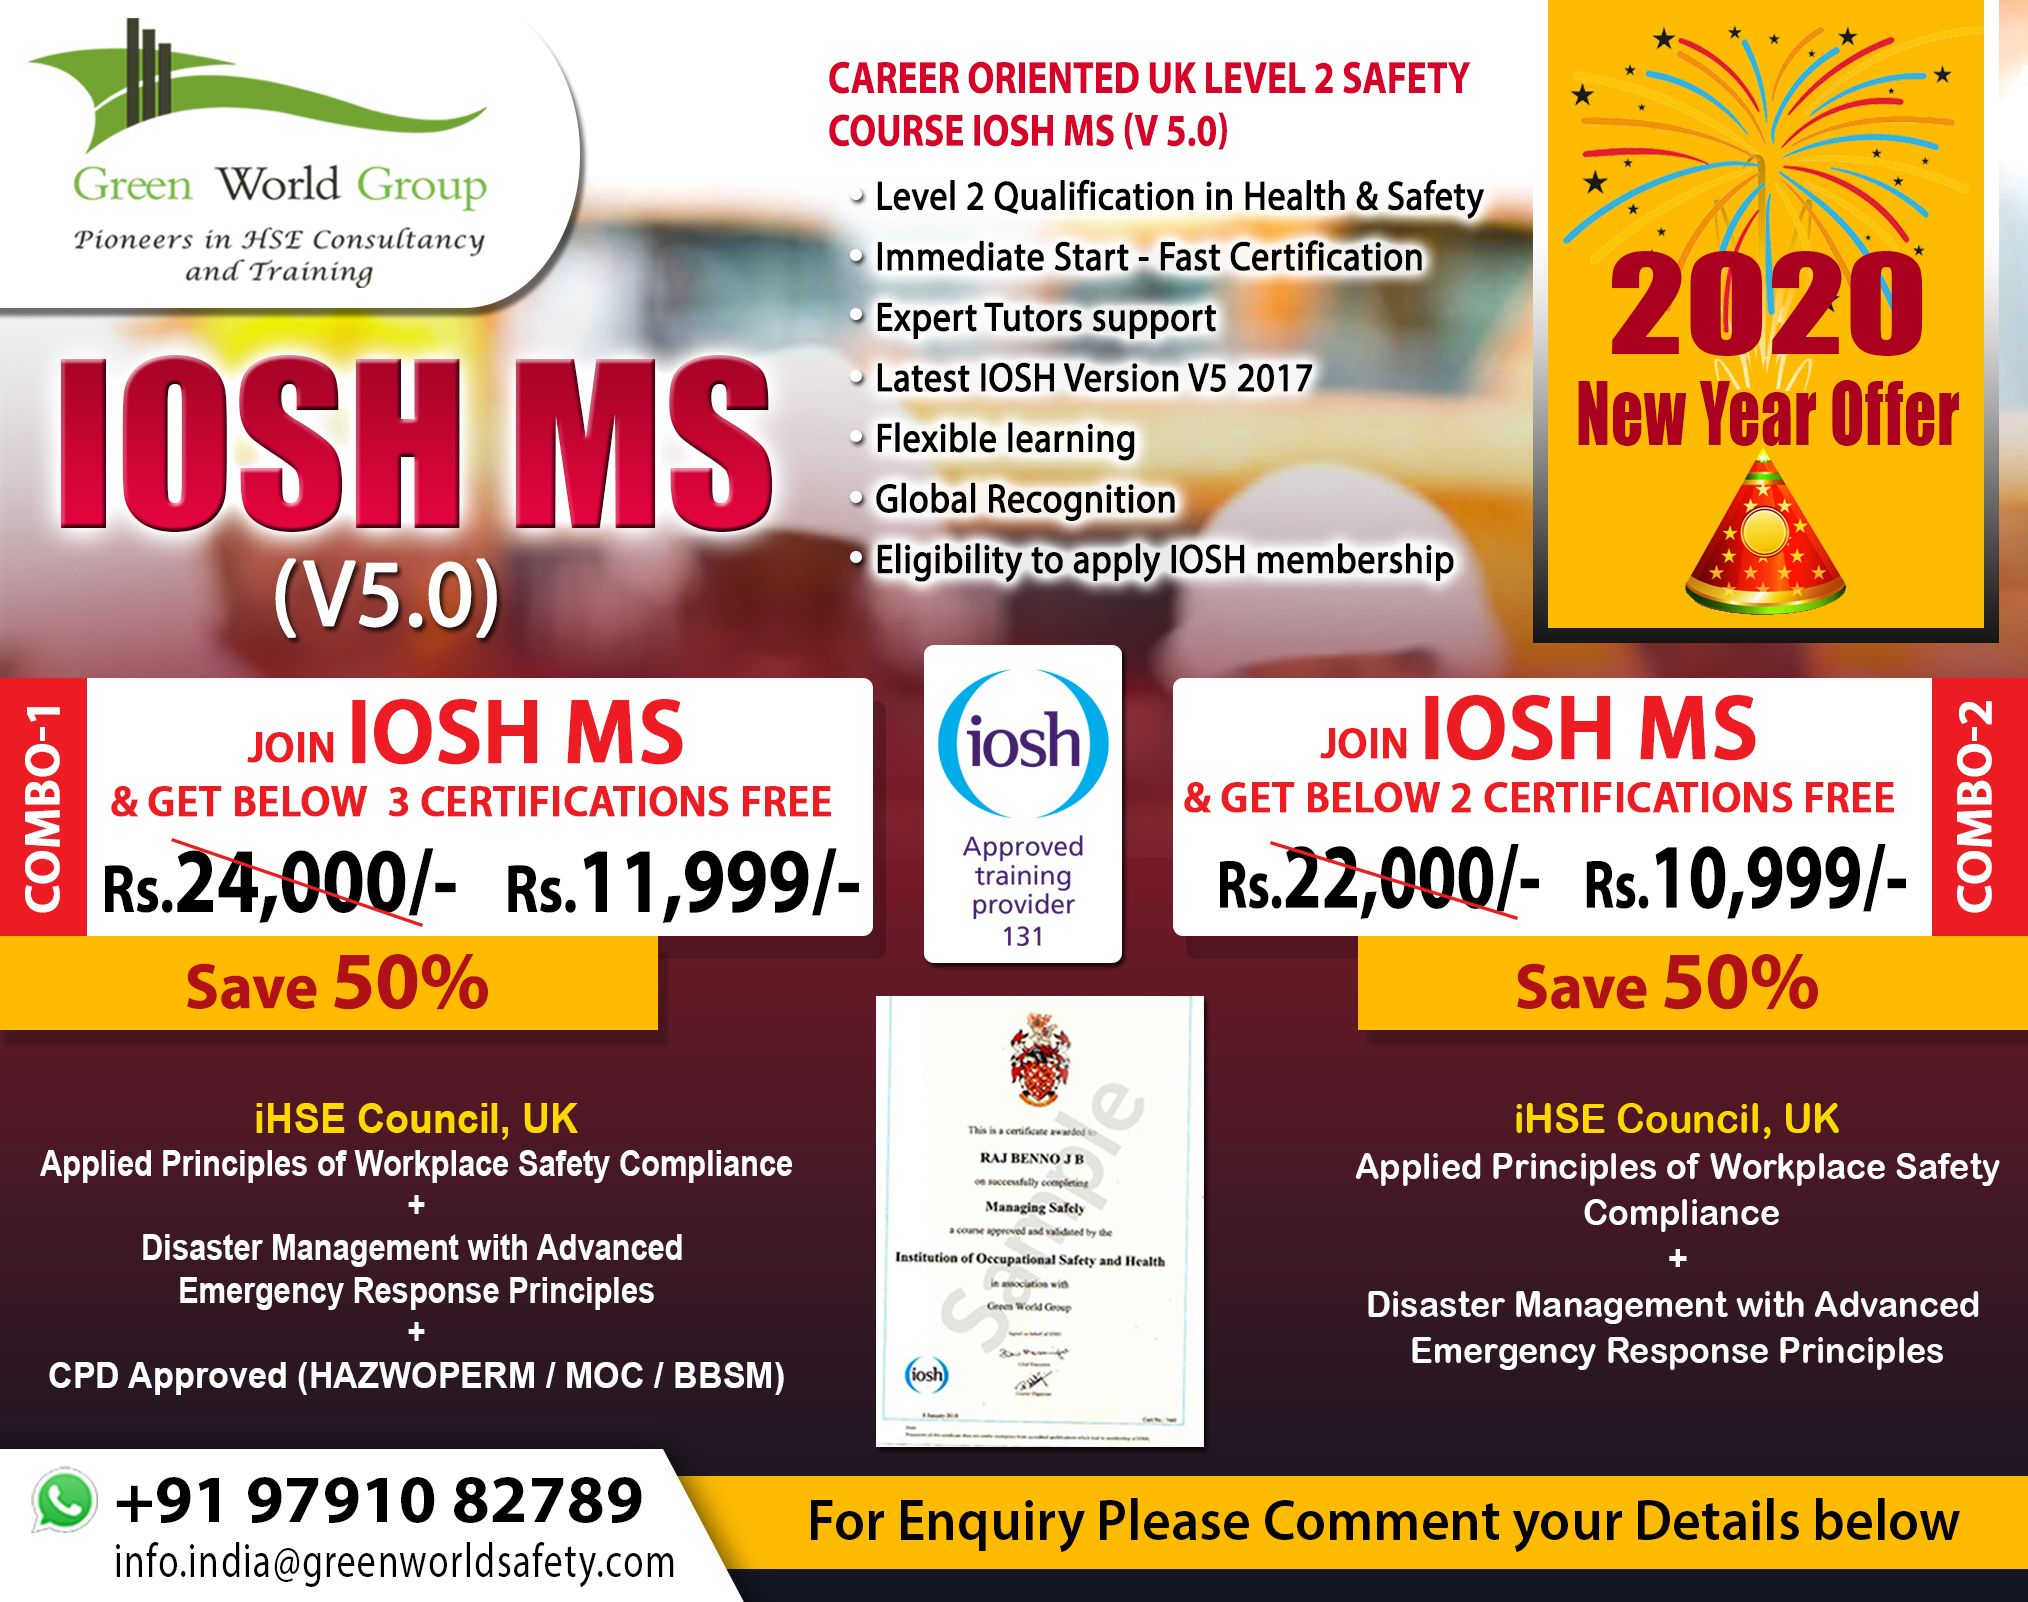 Green World Group Excellent New Year offer for IOSH MS